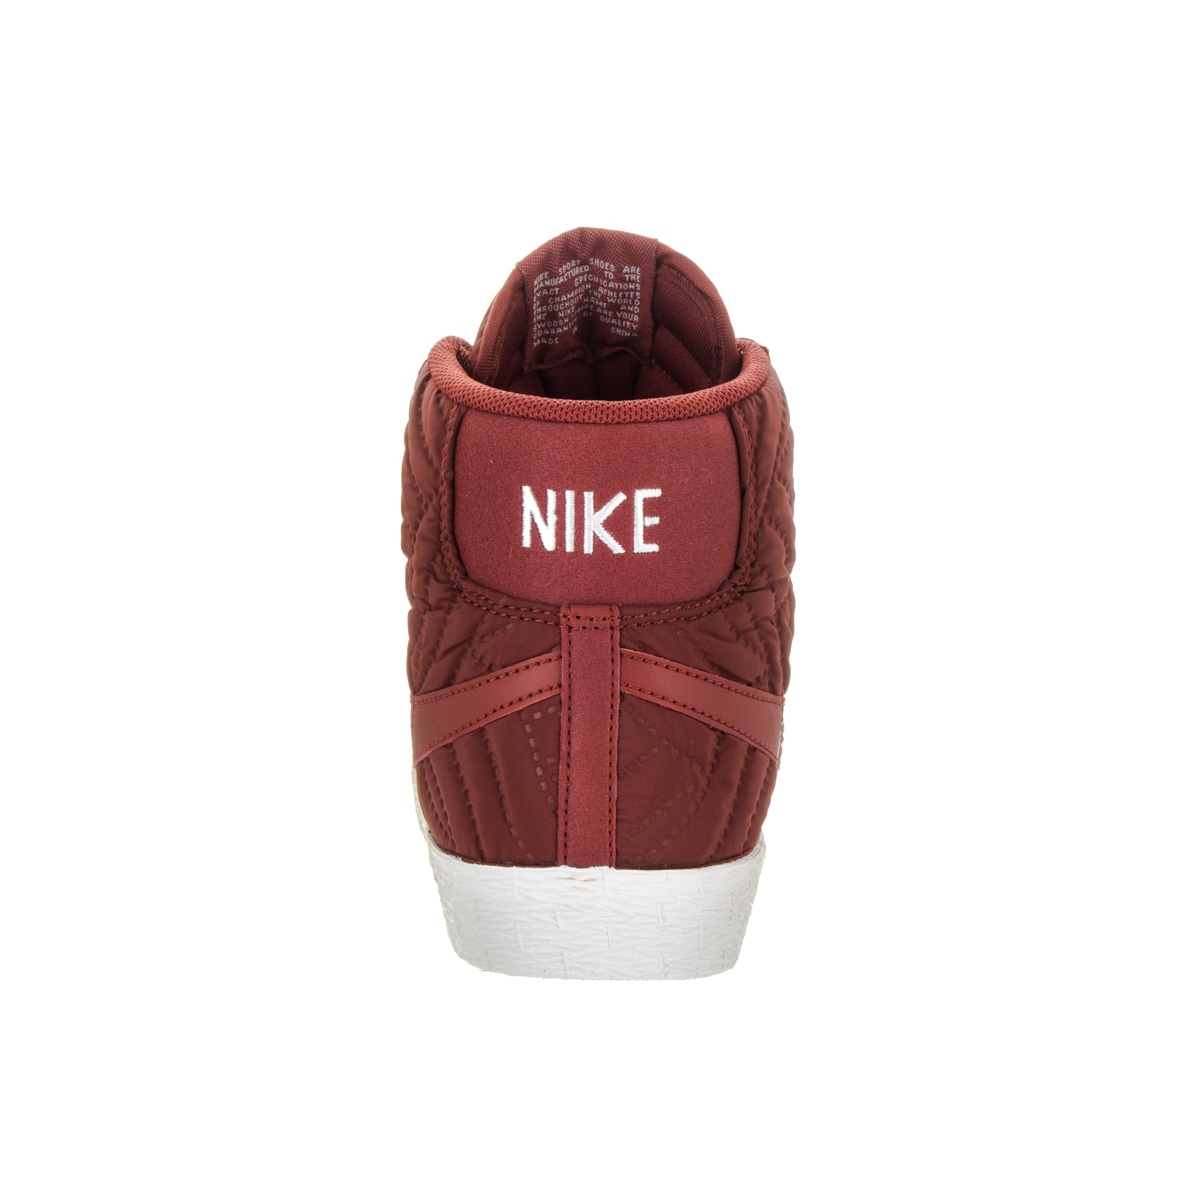 reputable site 97e1f 95d9d Shop Nike Womens Blazer Mid Prm Vintage Red Synthetic Leather Casual Shoes  - Free Shipping Today - Overstock.com - 13476351